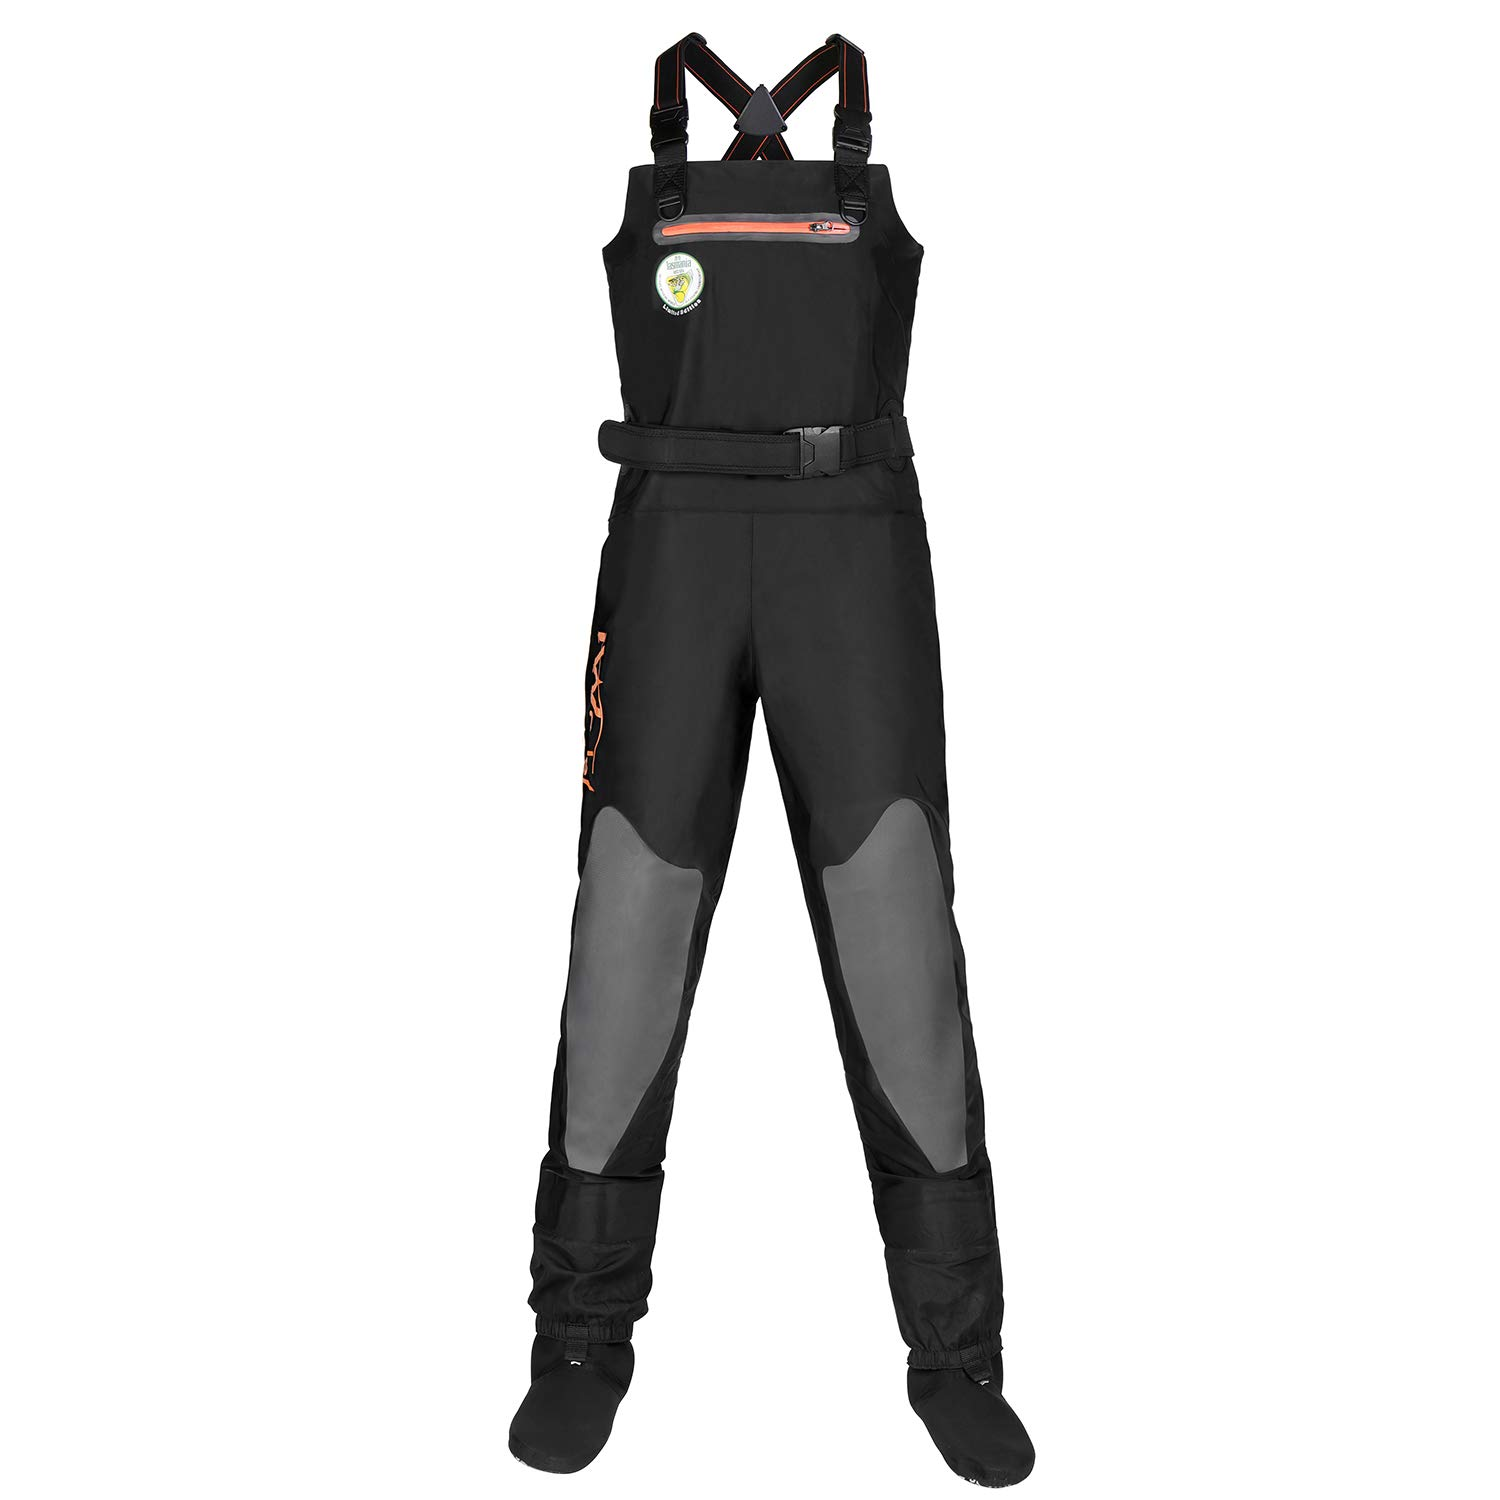 IWADER S1 Breathable Stockingfoot Chest Waders, Stretchable with Reinforced Knee for Women and Men